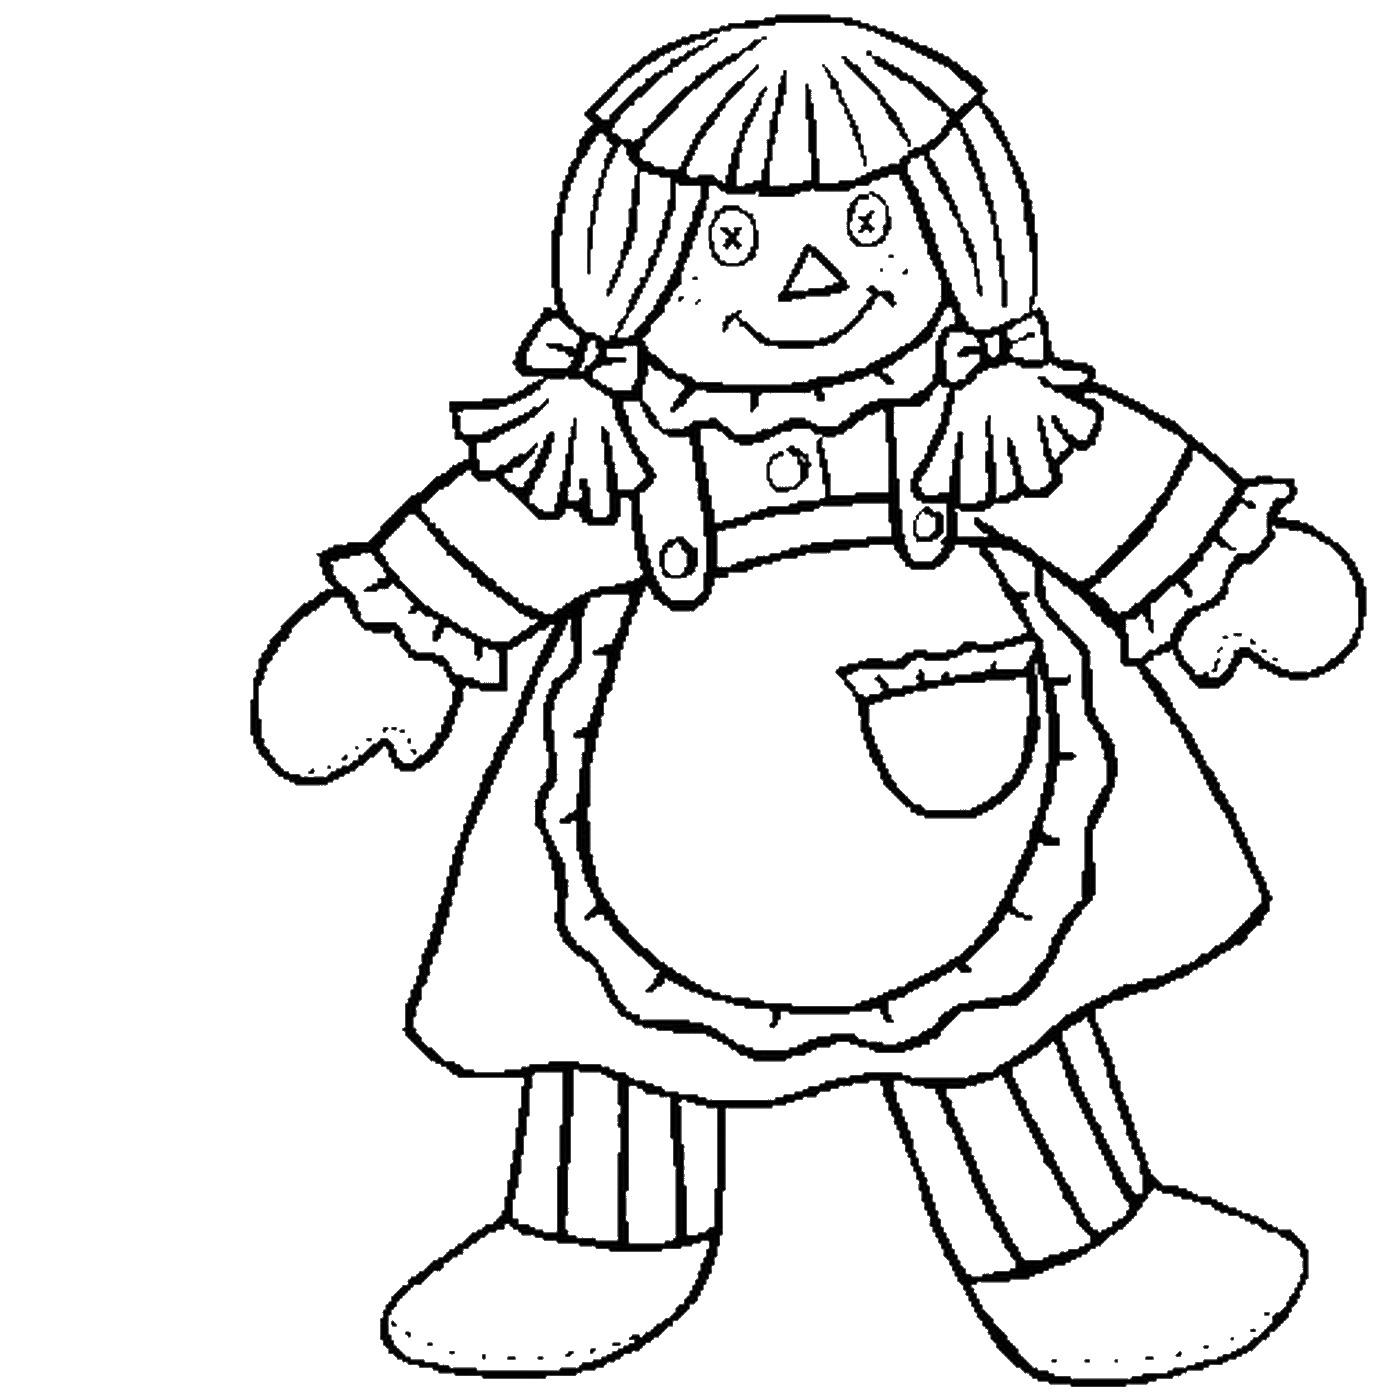 dolls colouring pages 40 free printable lol surprise dolls coloring pages dolls colouring pages